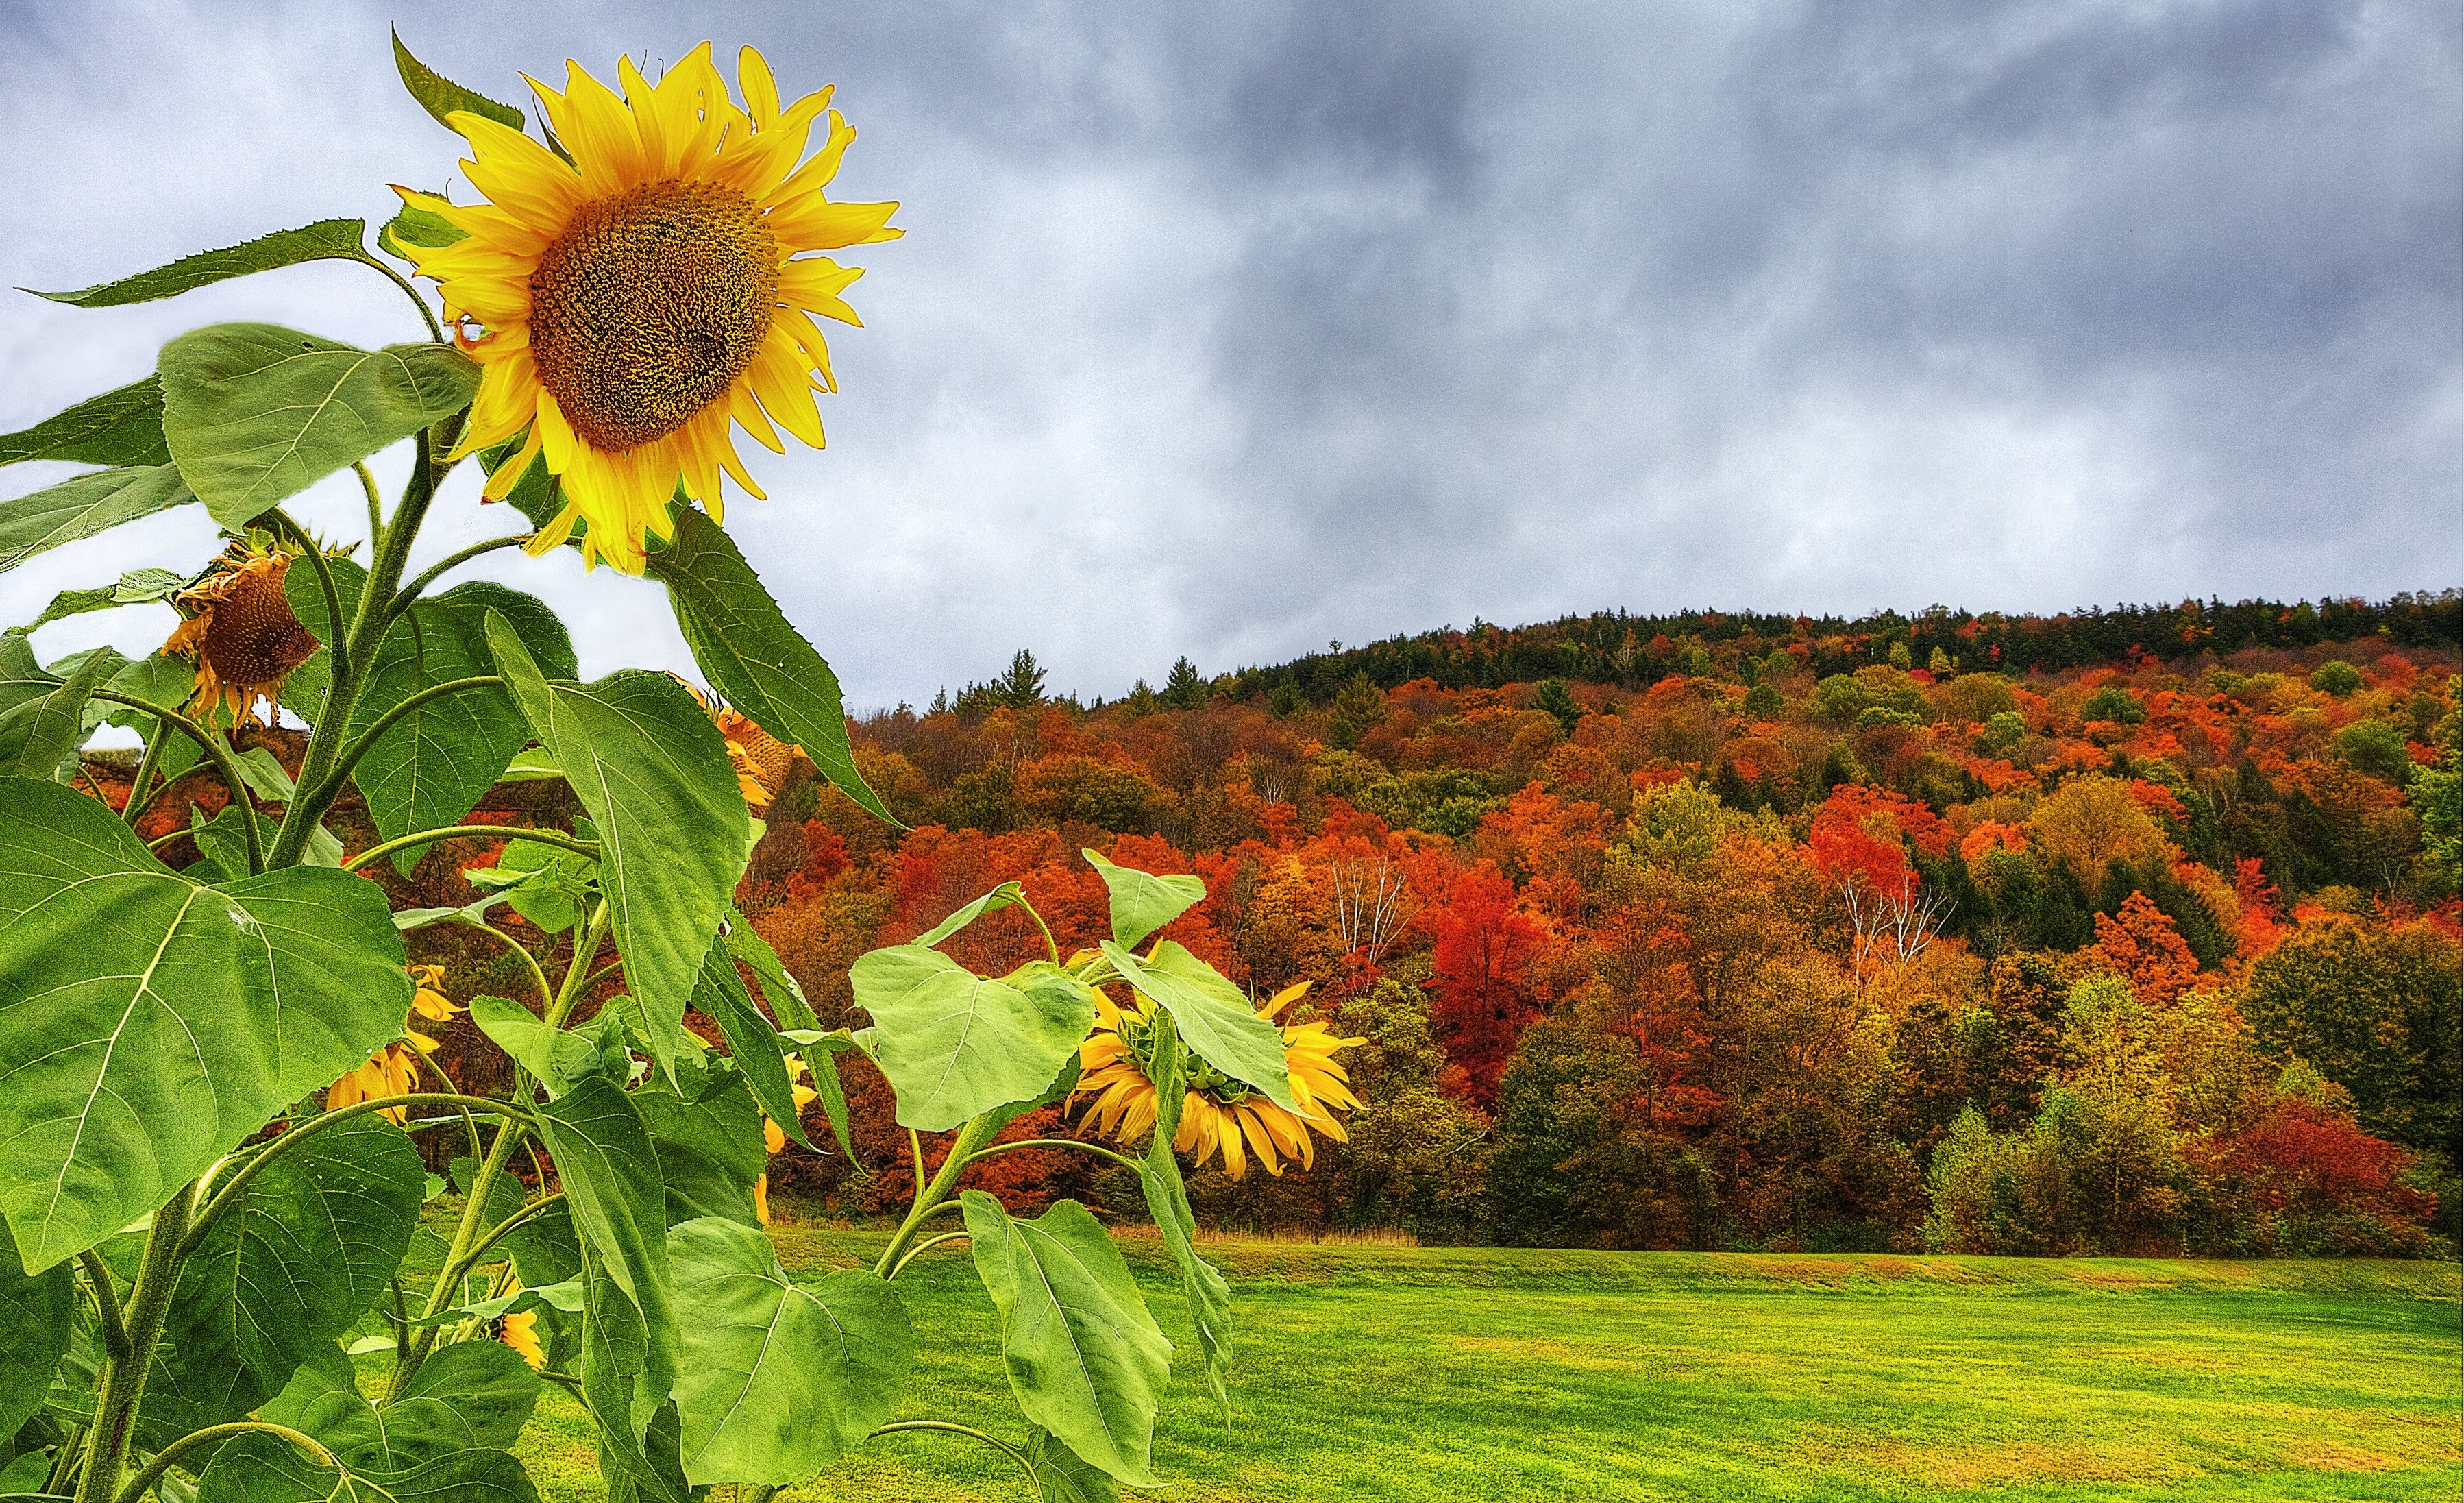 Autumn Field Forest Trees Sunflowers Landscape Wallpaper Background 3596x2193